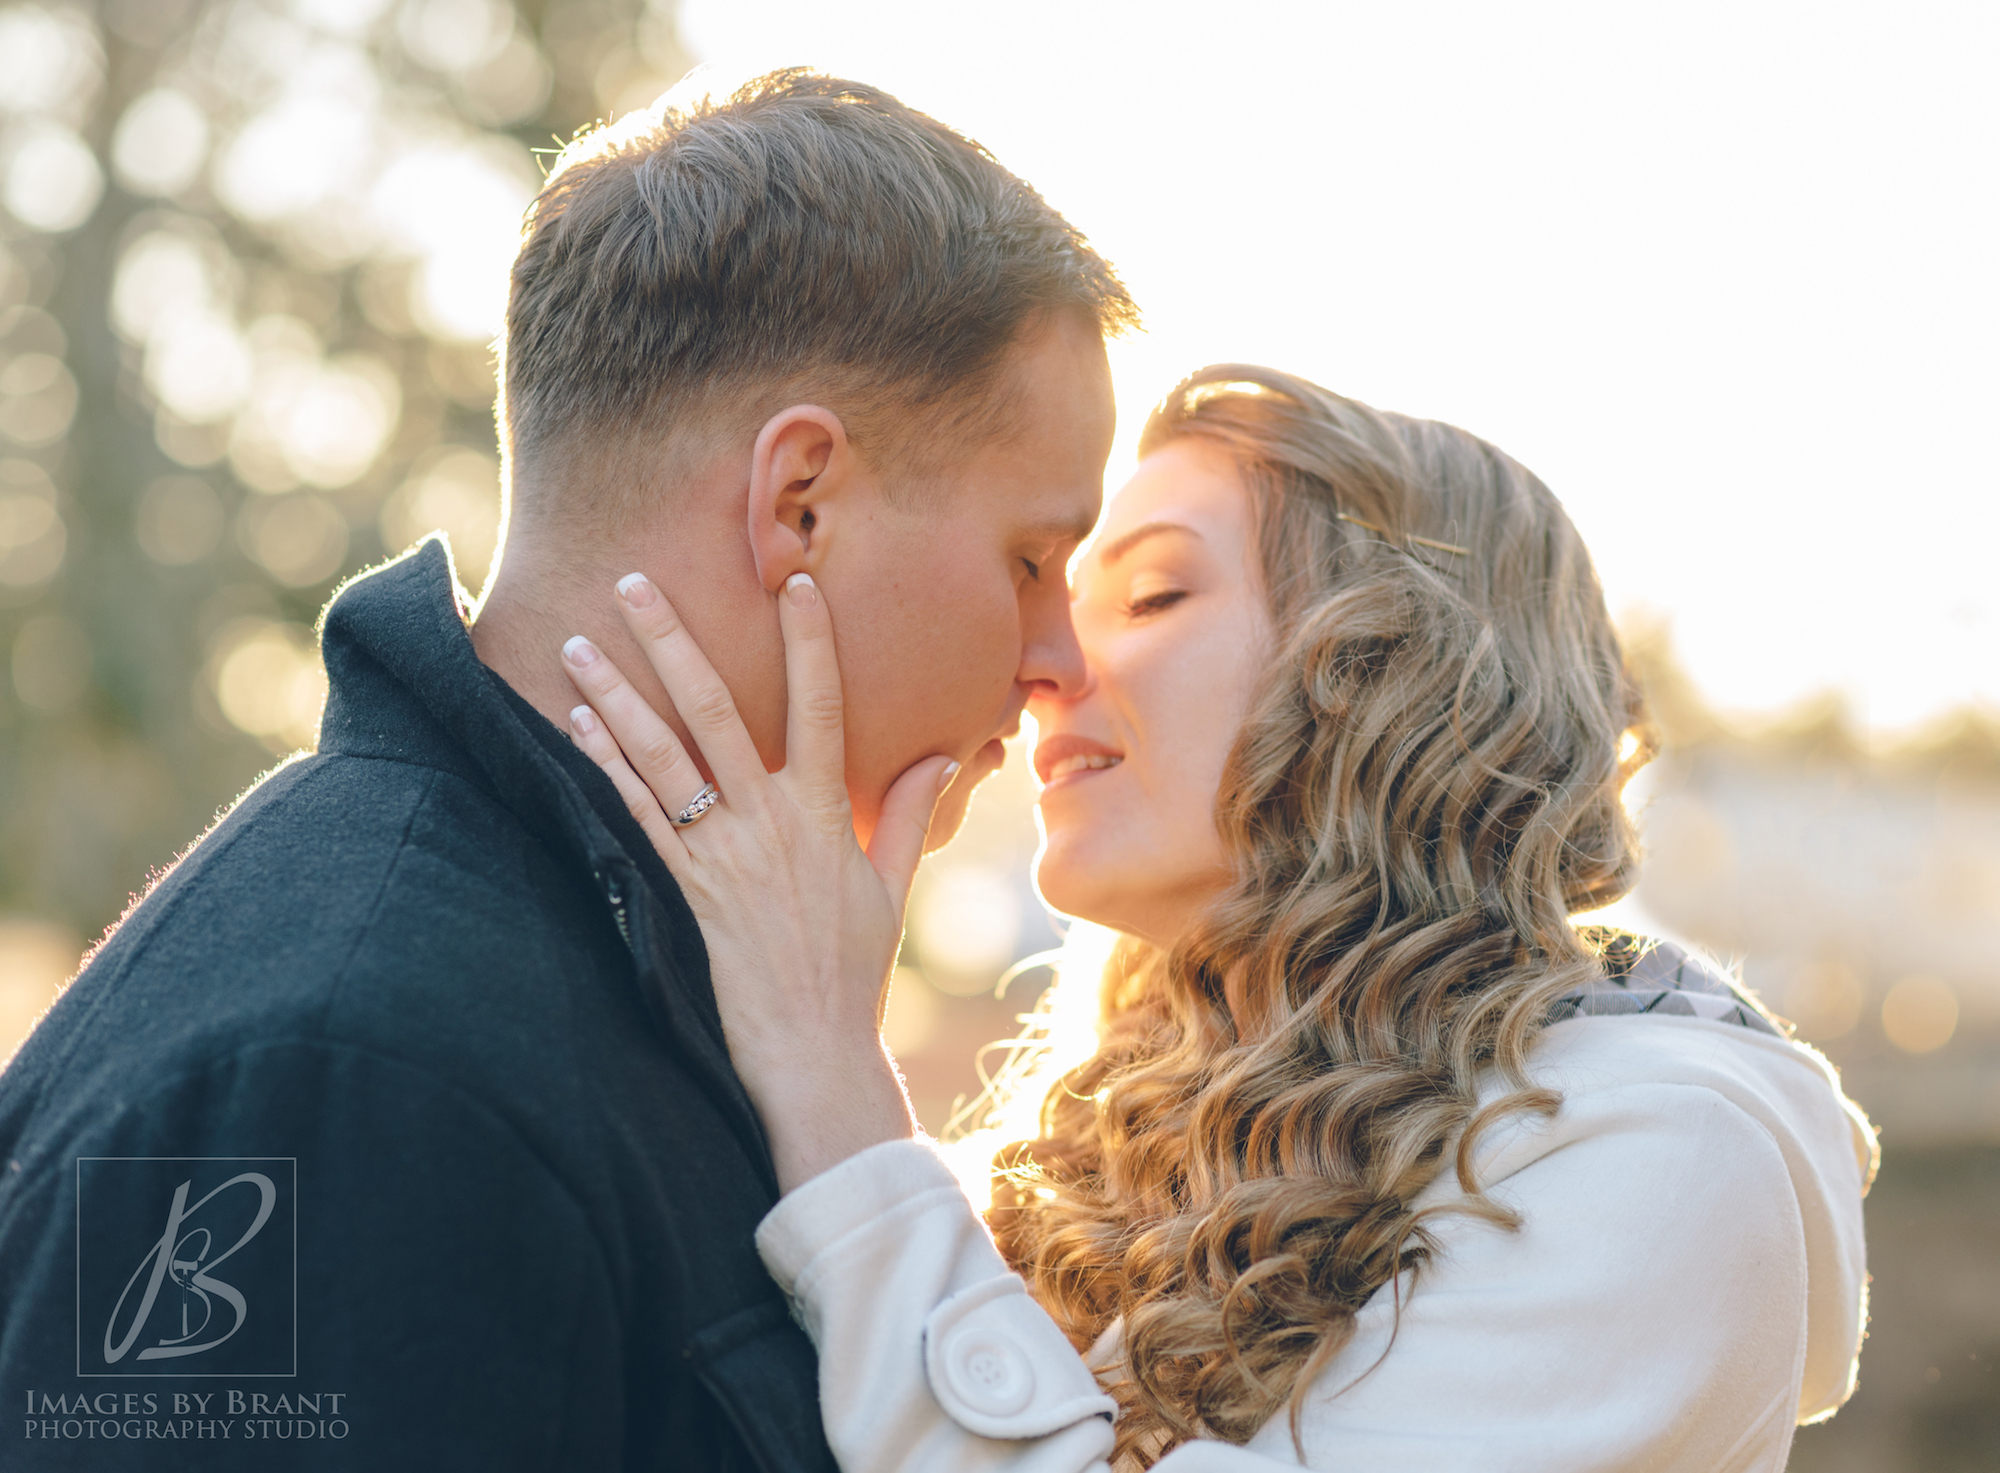 Image for Guest Post: Creating Lasting Connections On A Tight Timeline by Tia and Shane Brant